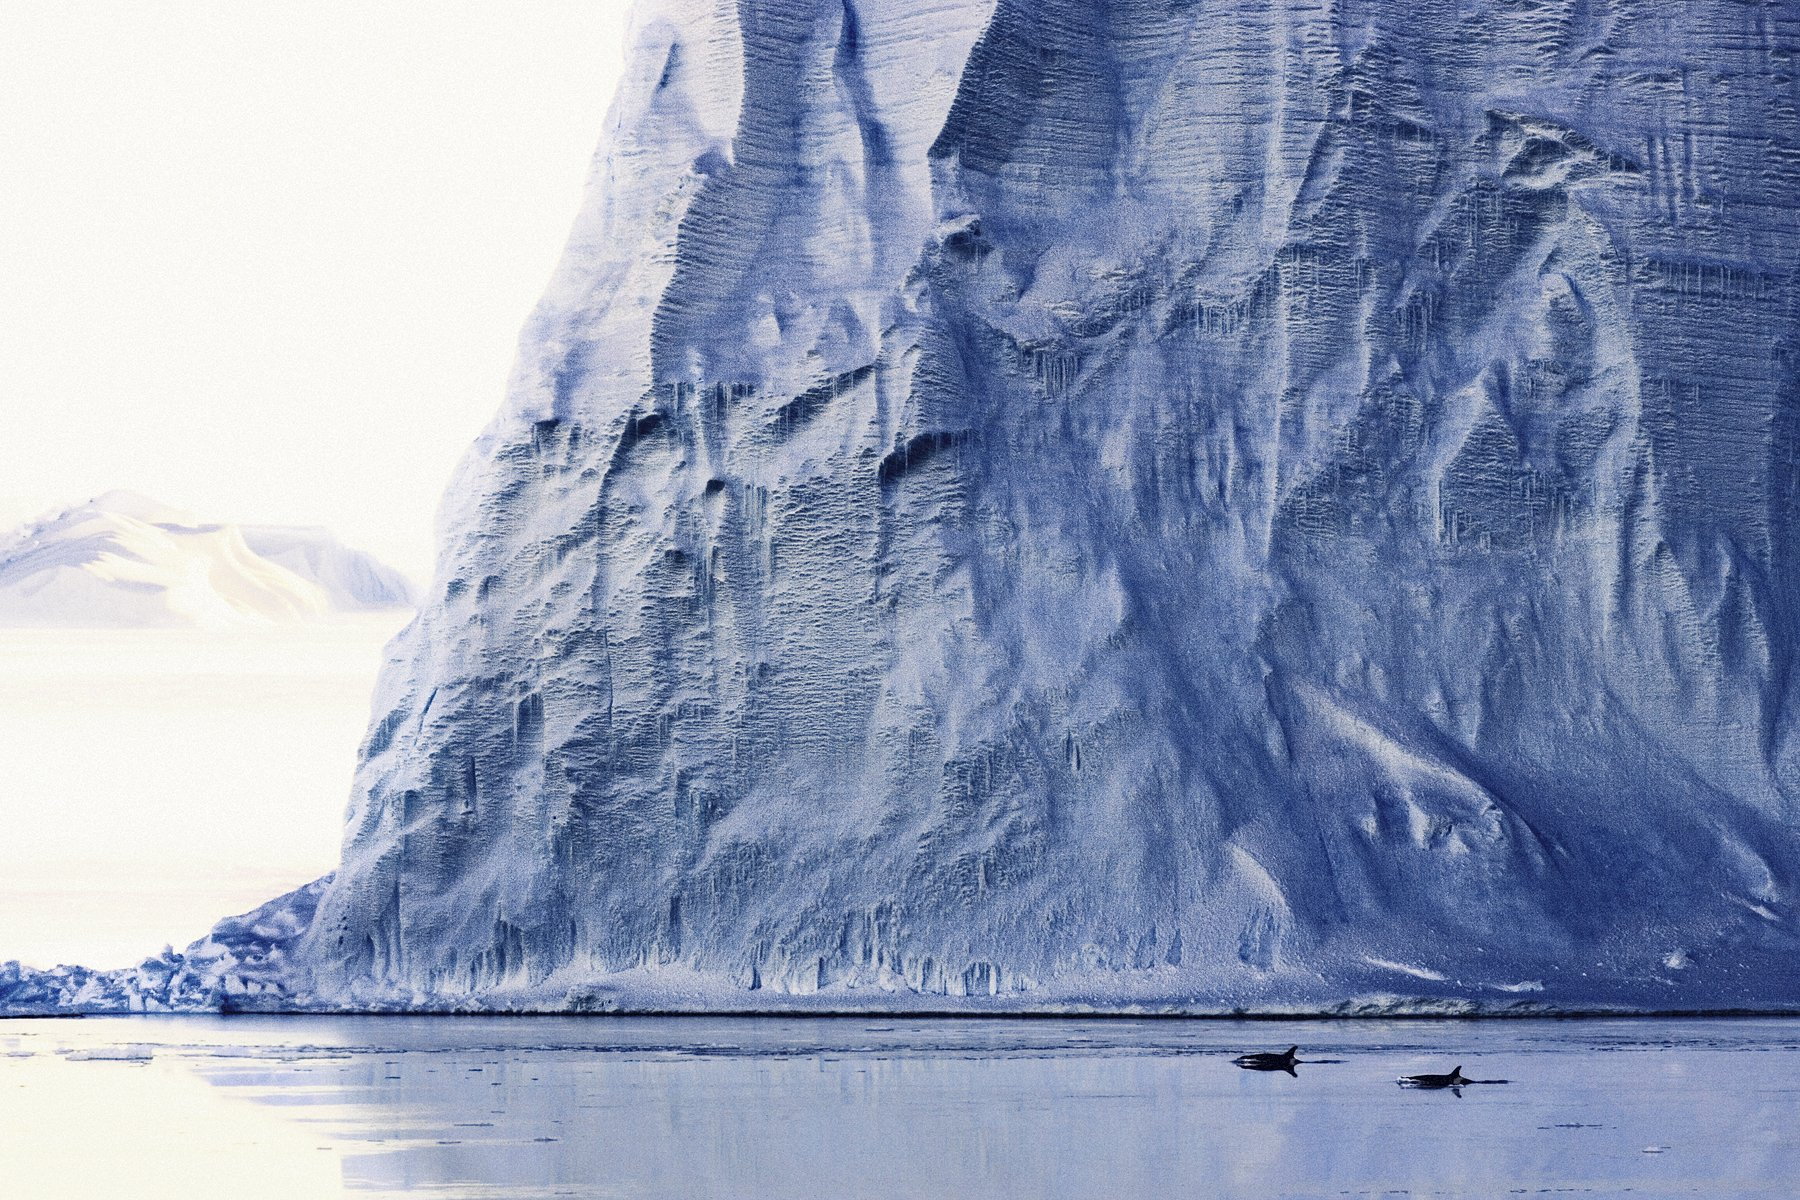 Ross Sea ice shelf wall at the end of the world_Credit John Weller